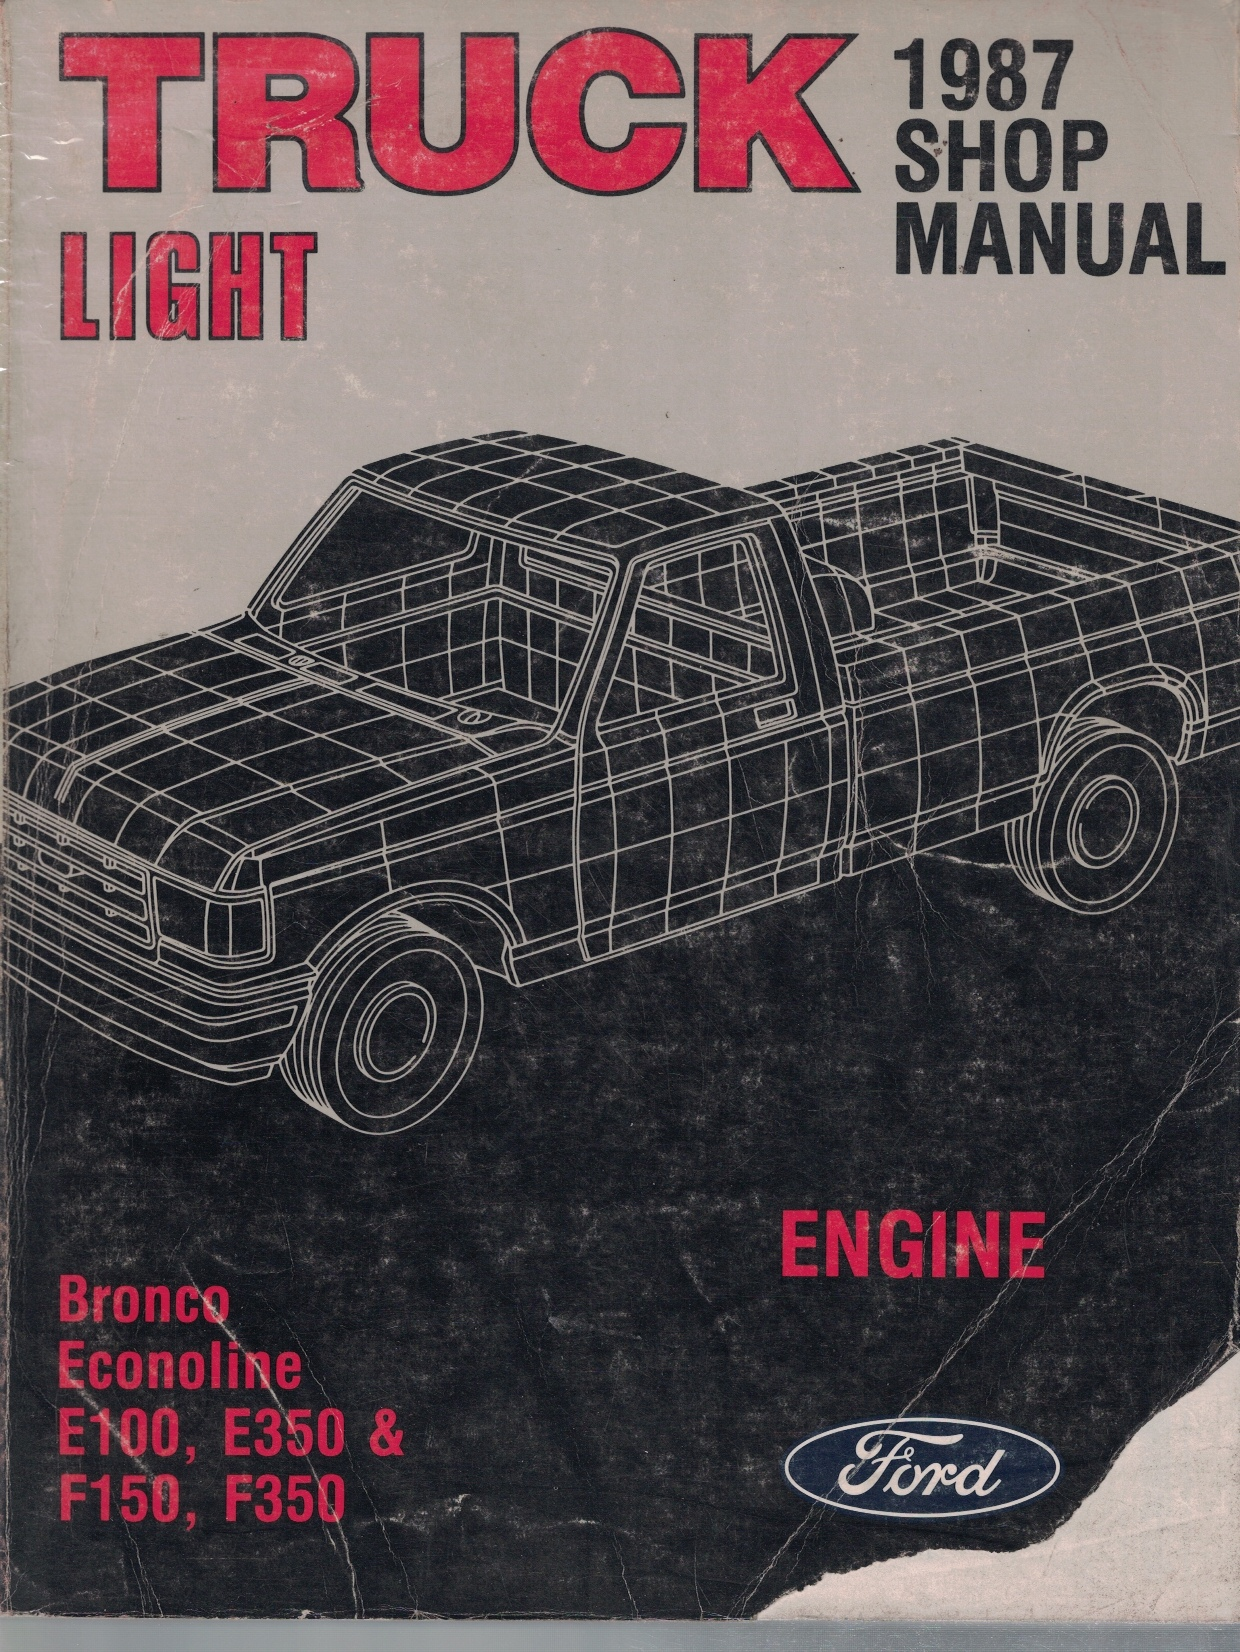 Image for 1987 Ford Light Truck Shop Manual; Bronco, Econoline E-100, E-350), F-150, F-350: 2 Volume Set - Includes Body/Chassis/Electrical; and Engine volumes [Original Service Manuals]